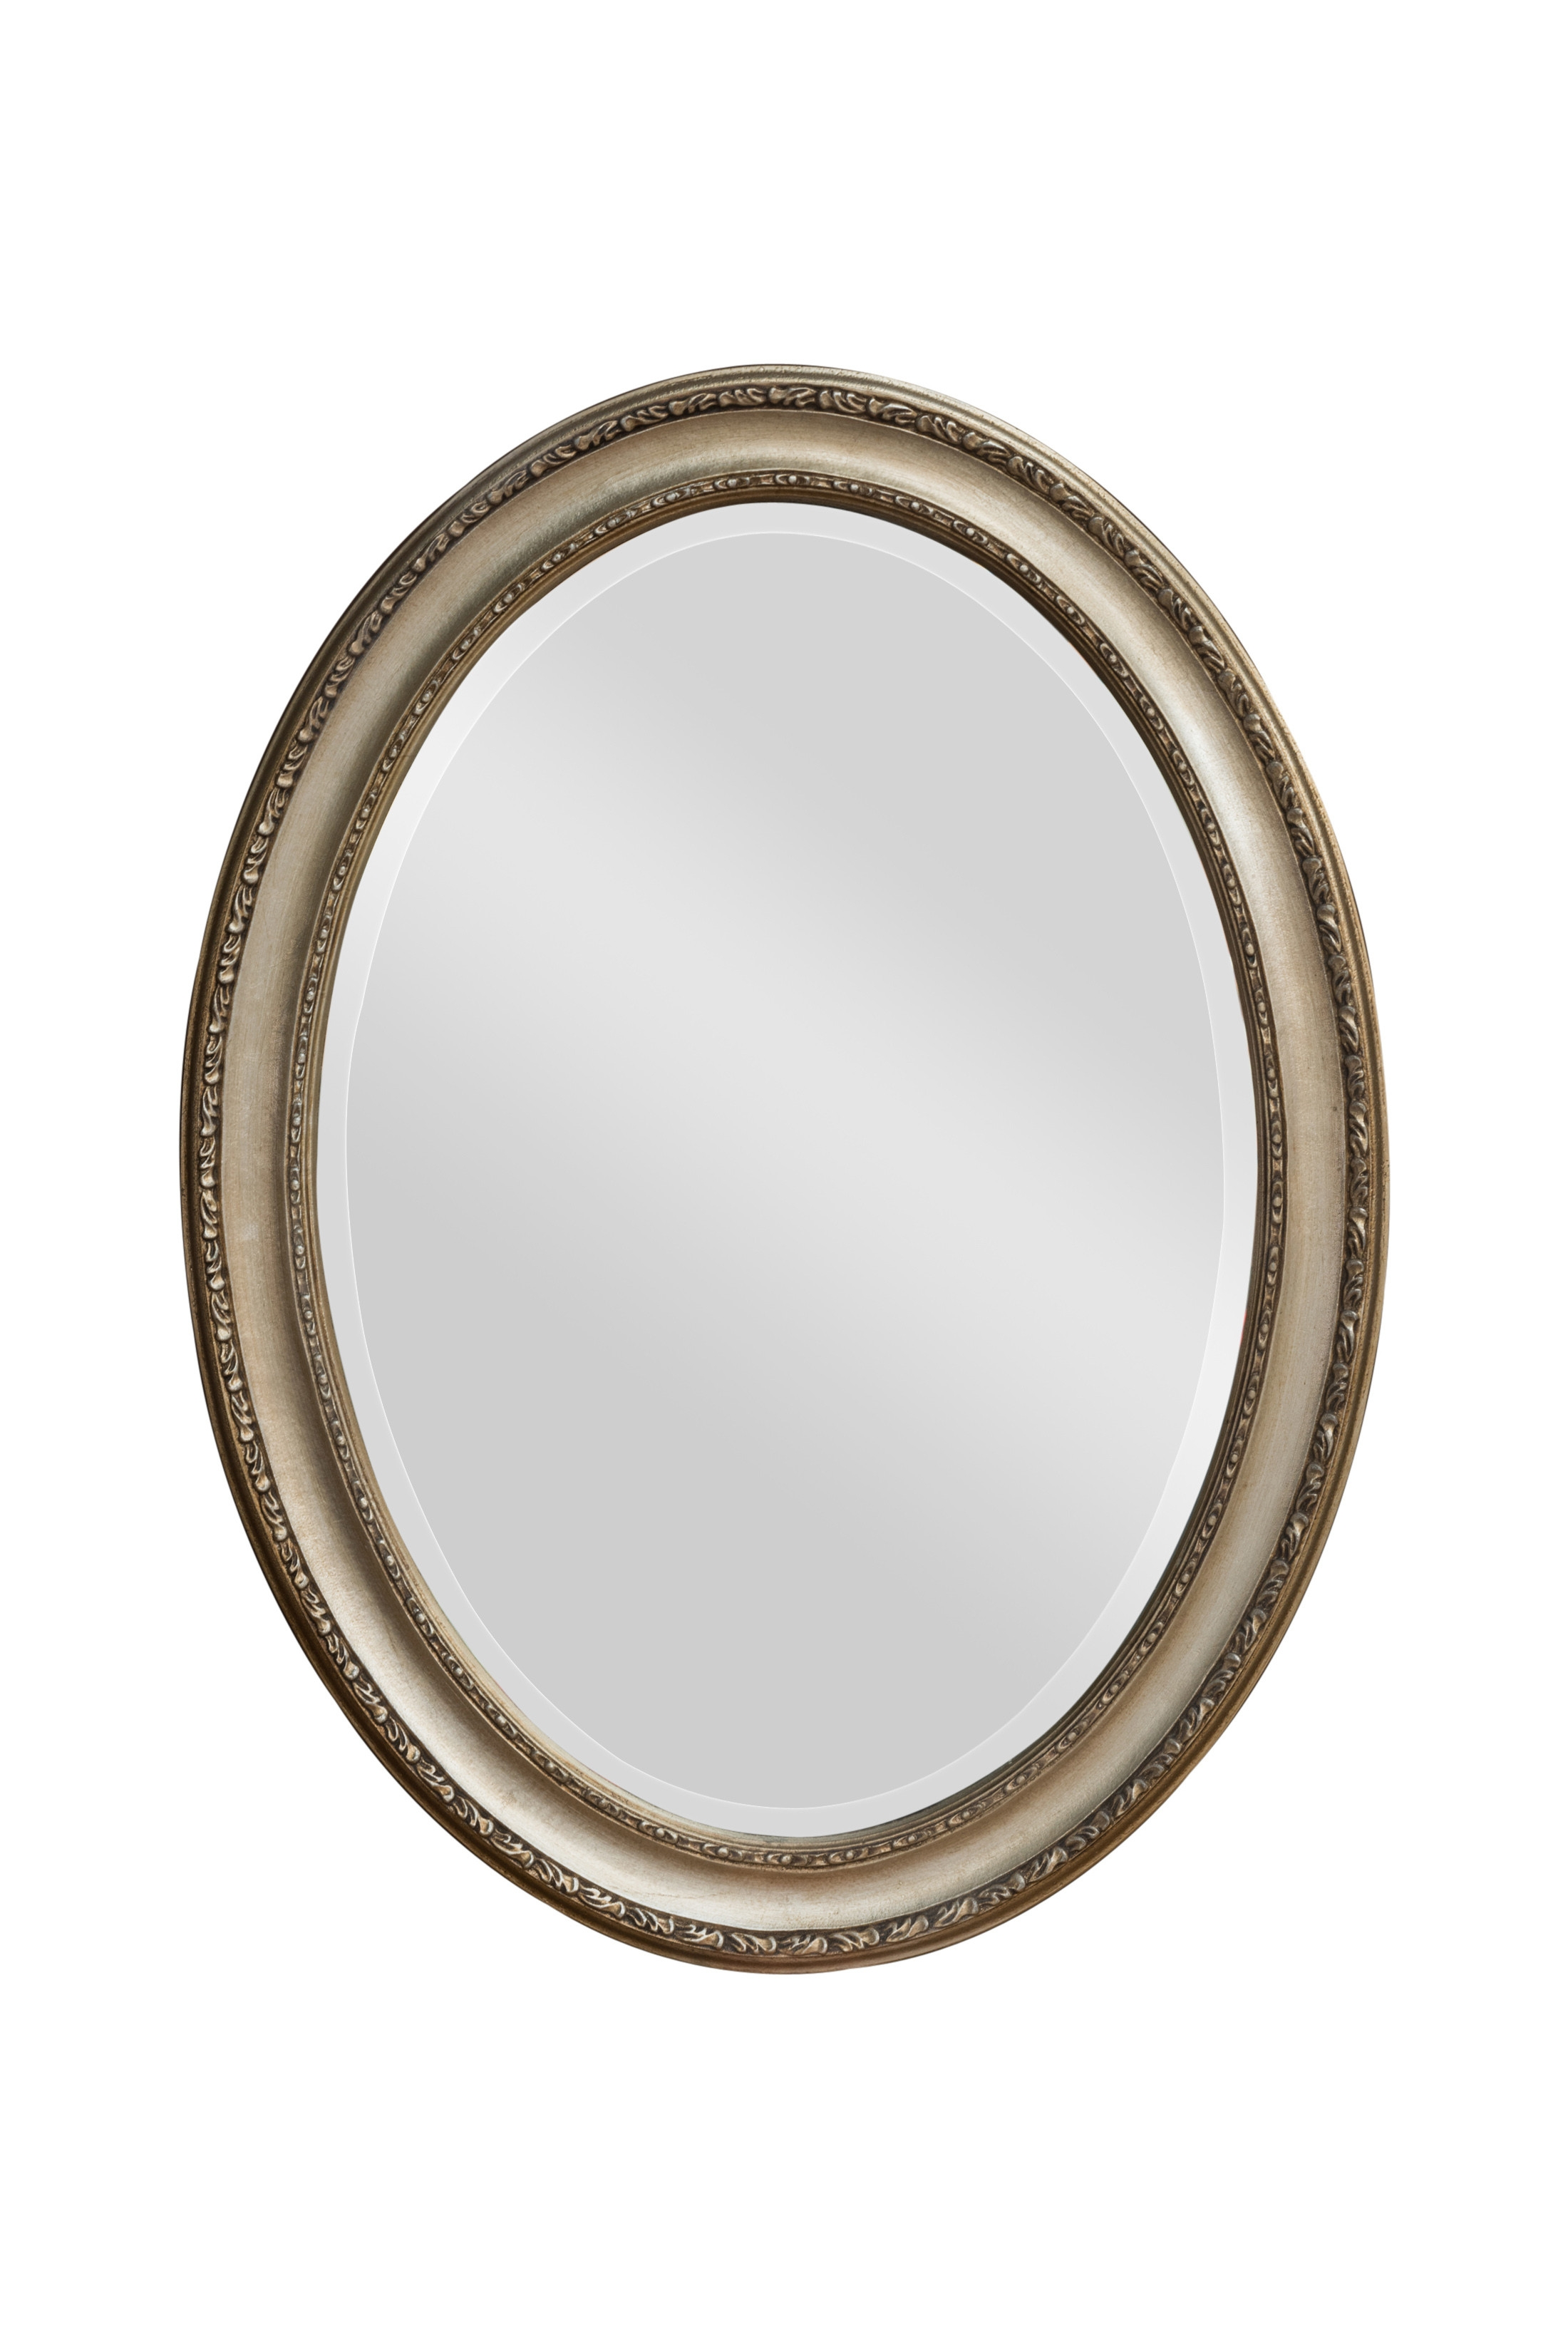 Silver Victorian Oval Mirror Bedroom Mirrors For Sale Panfili For Silver Oval Mirror (Image 13 of 15)